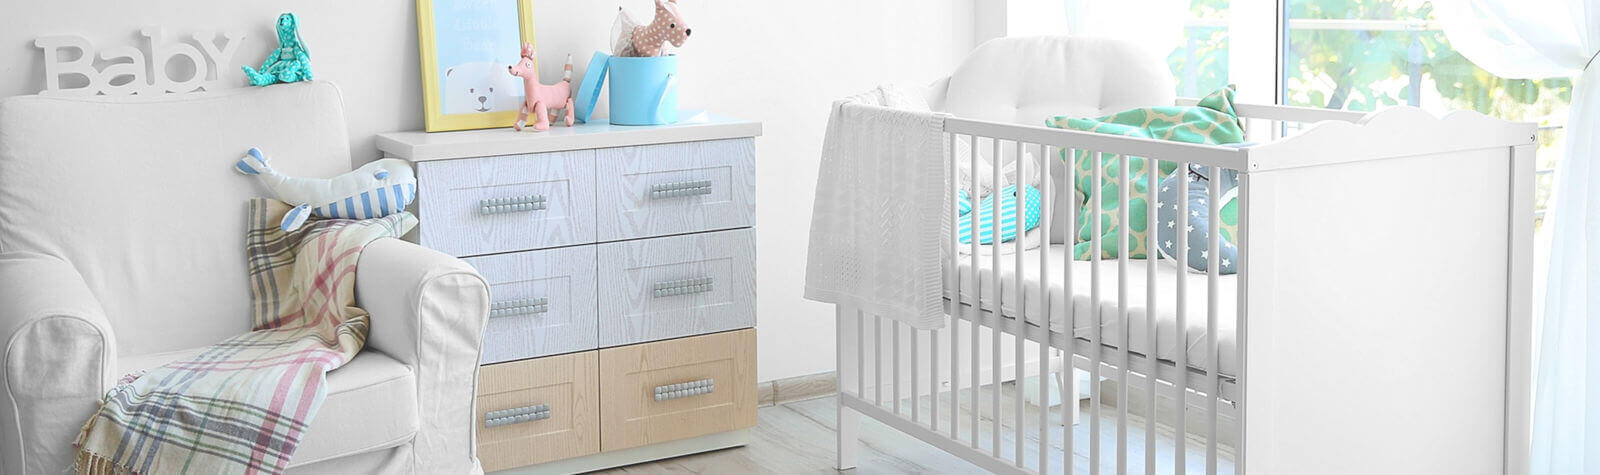 Best Crib Mattresses for Baby: Reviews & Parent's Guide